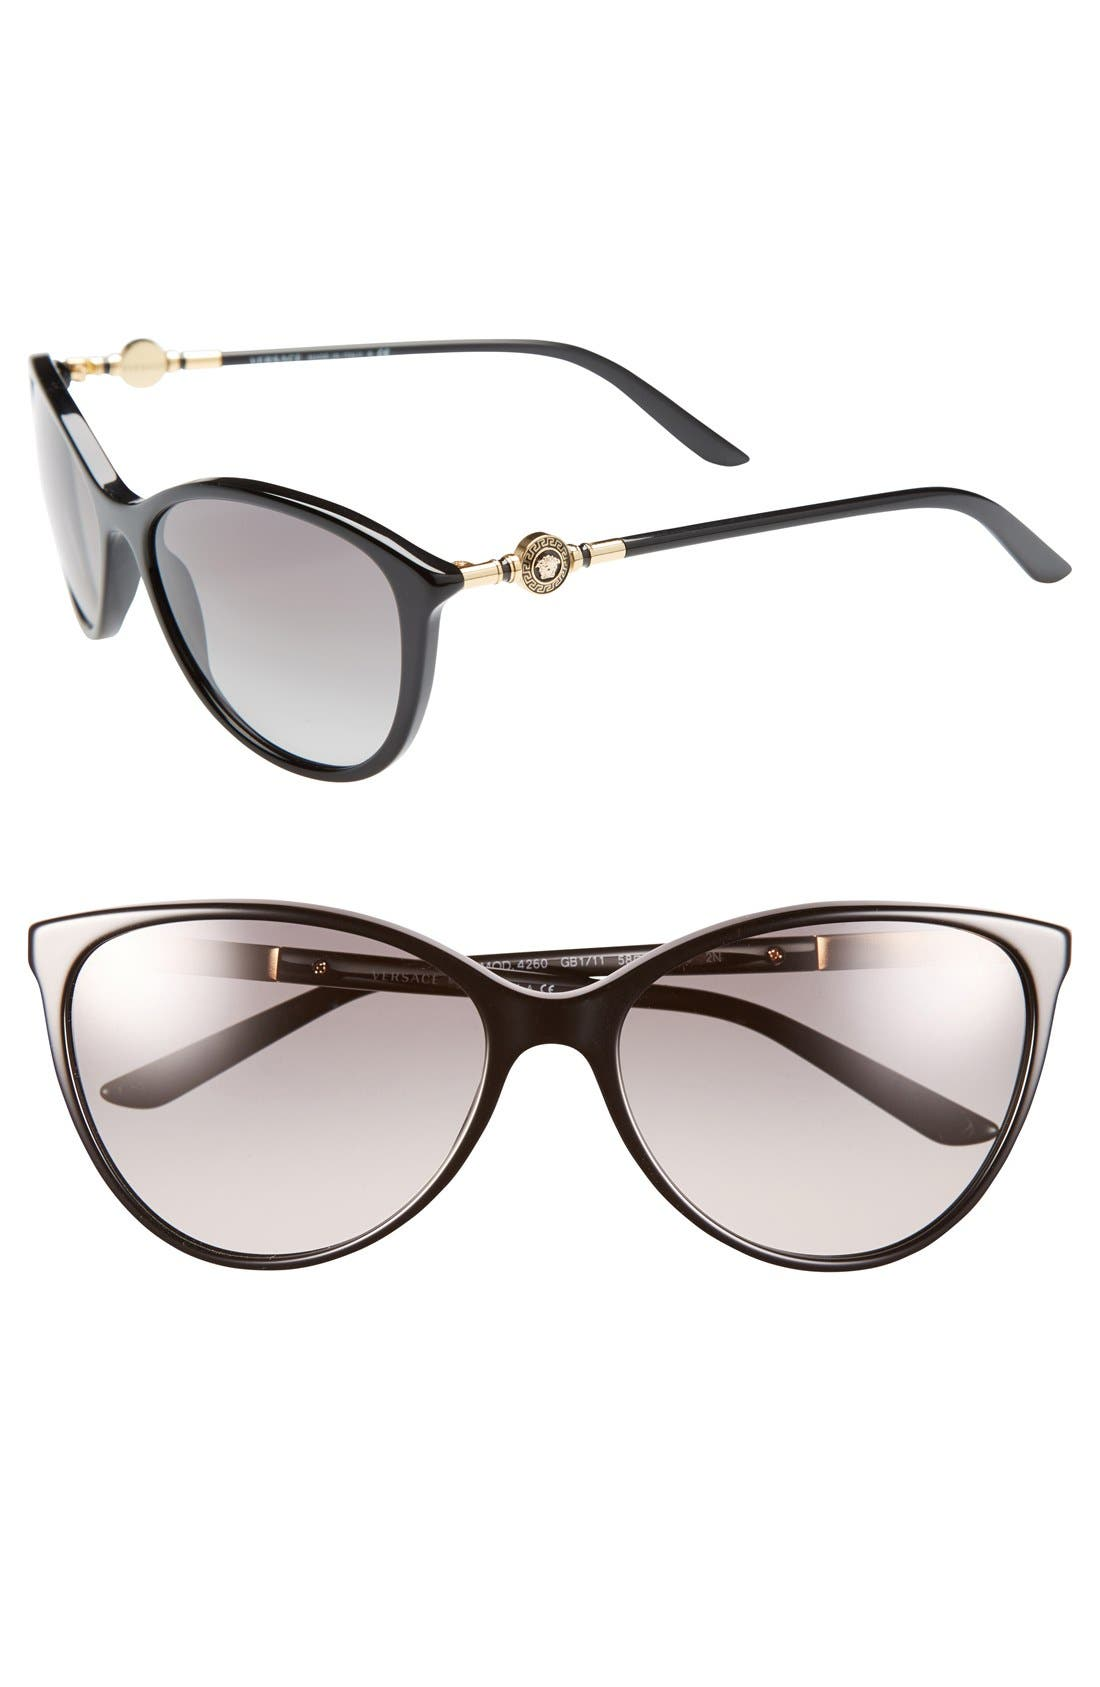 Alternate Image 1 Selected - Versace 'Glam' 57mm Medallion Temple Sunglasses